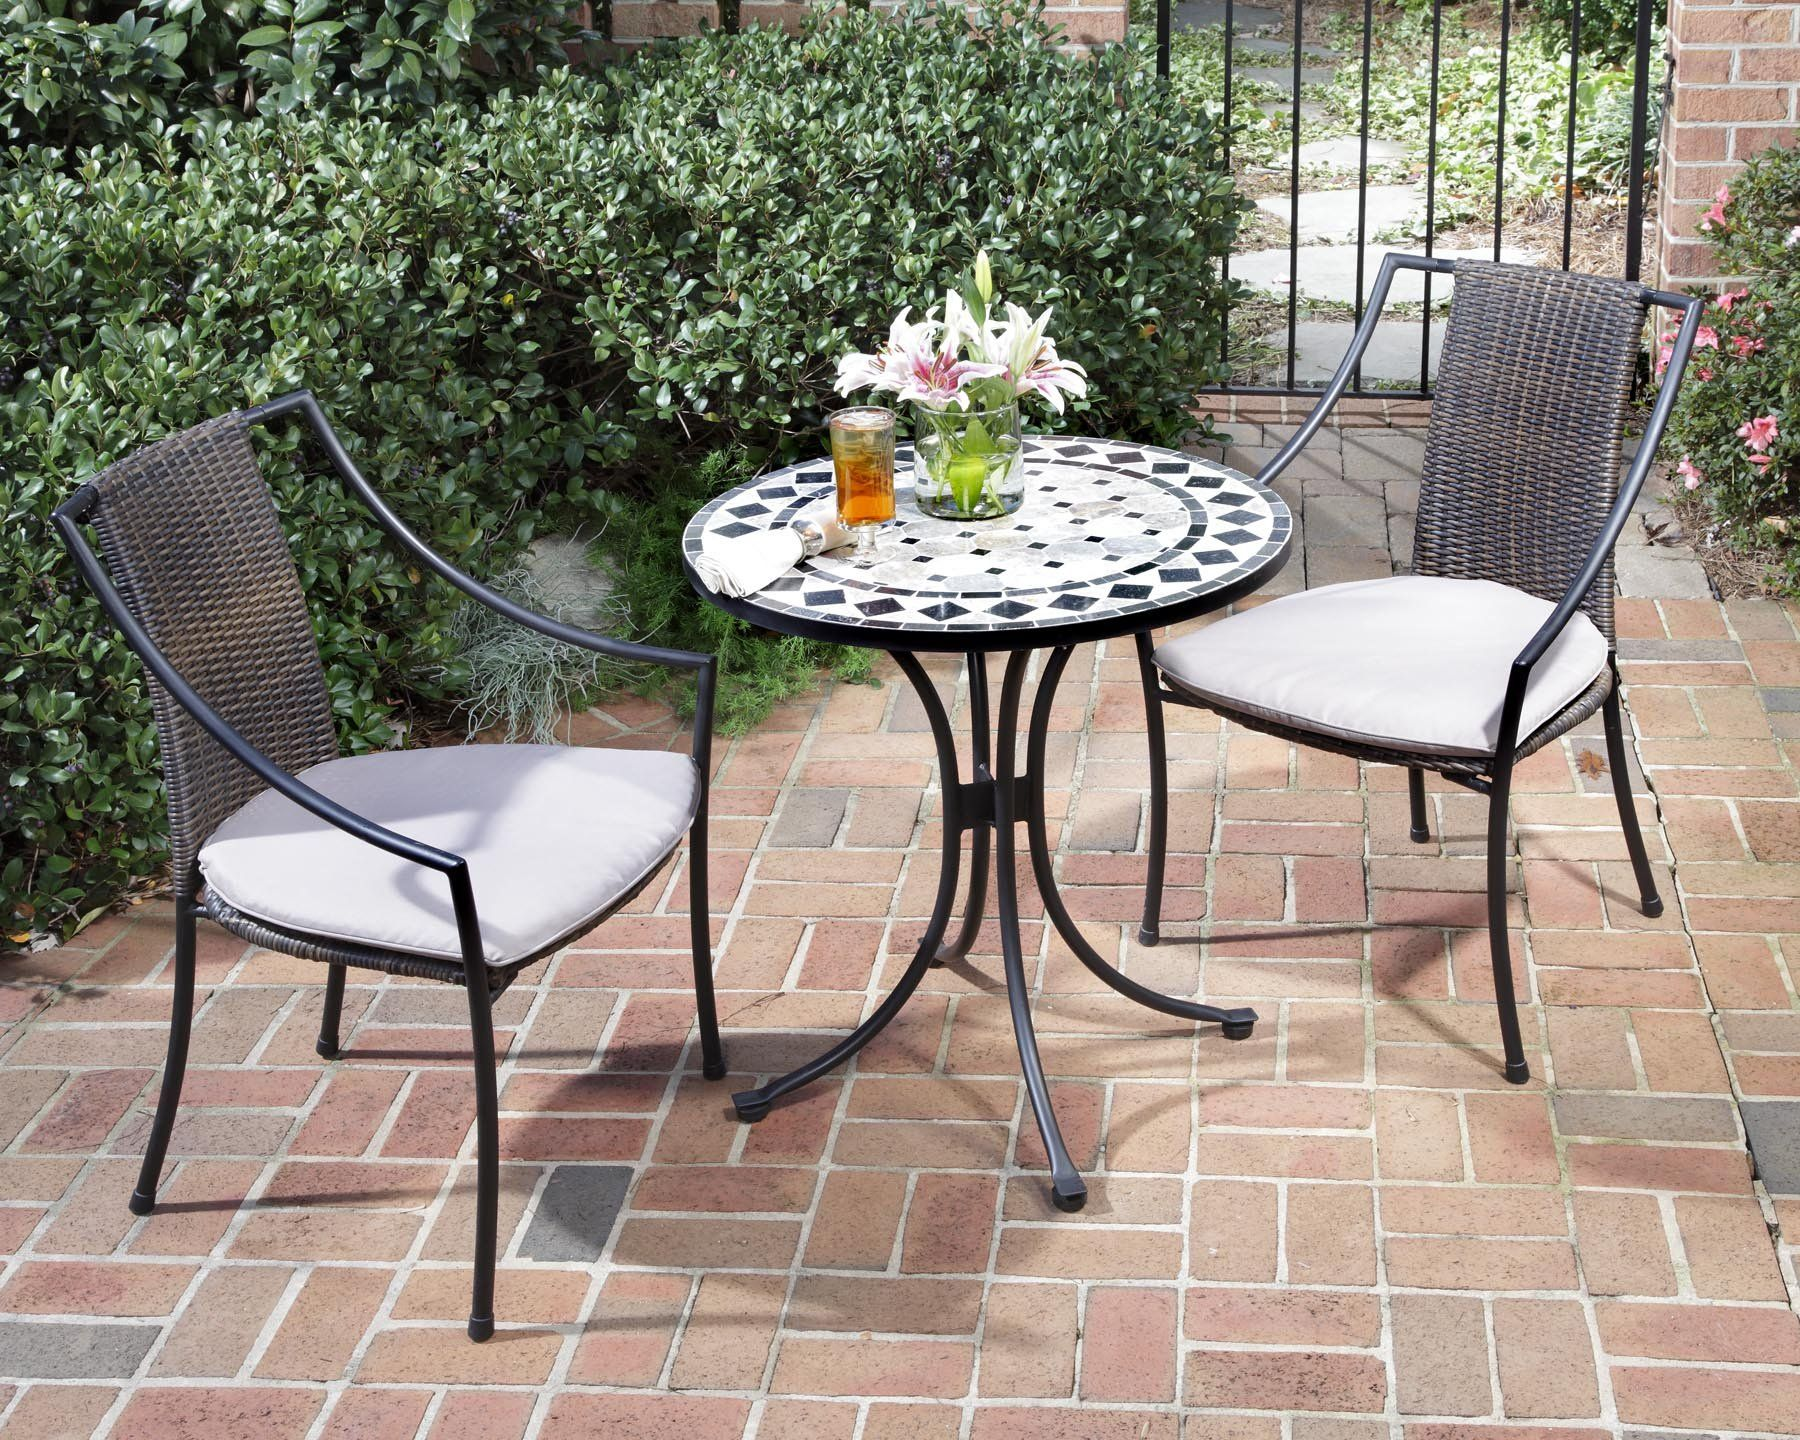 3 Piece Outdoor Table And Chair Set Part - 48: Home Style 5605-340 3-Piece Outdoor Bistro Set, Black Finish. 3